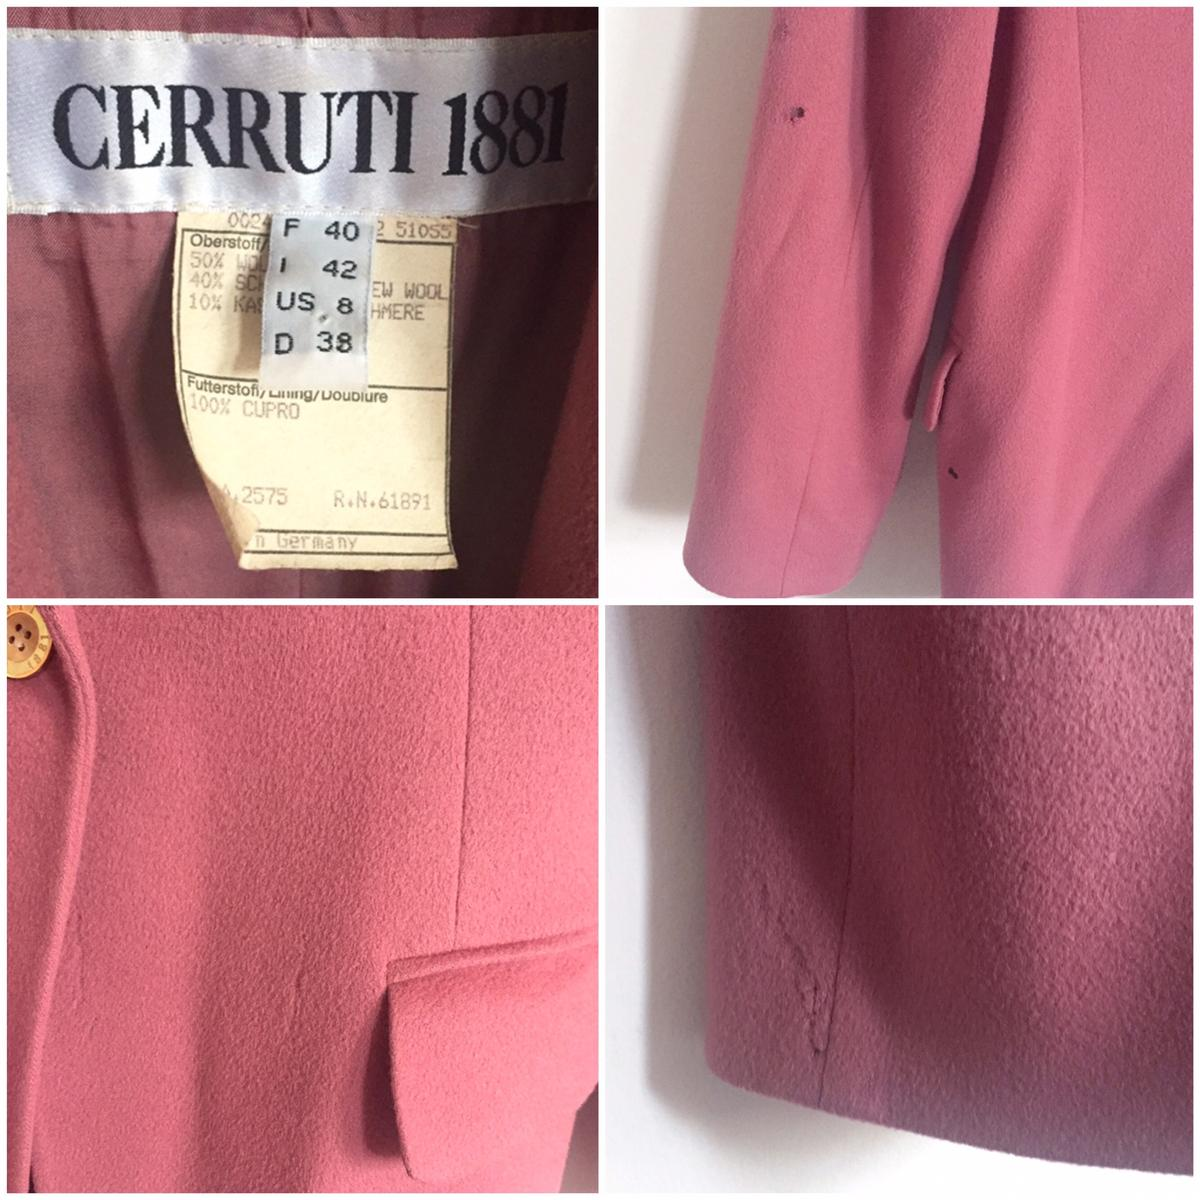 MULBERRY CERRUTI 1881 WOOL CASHMERE BLAZER in E9 London for £20 00